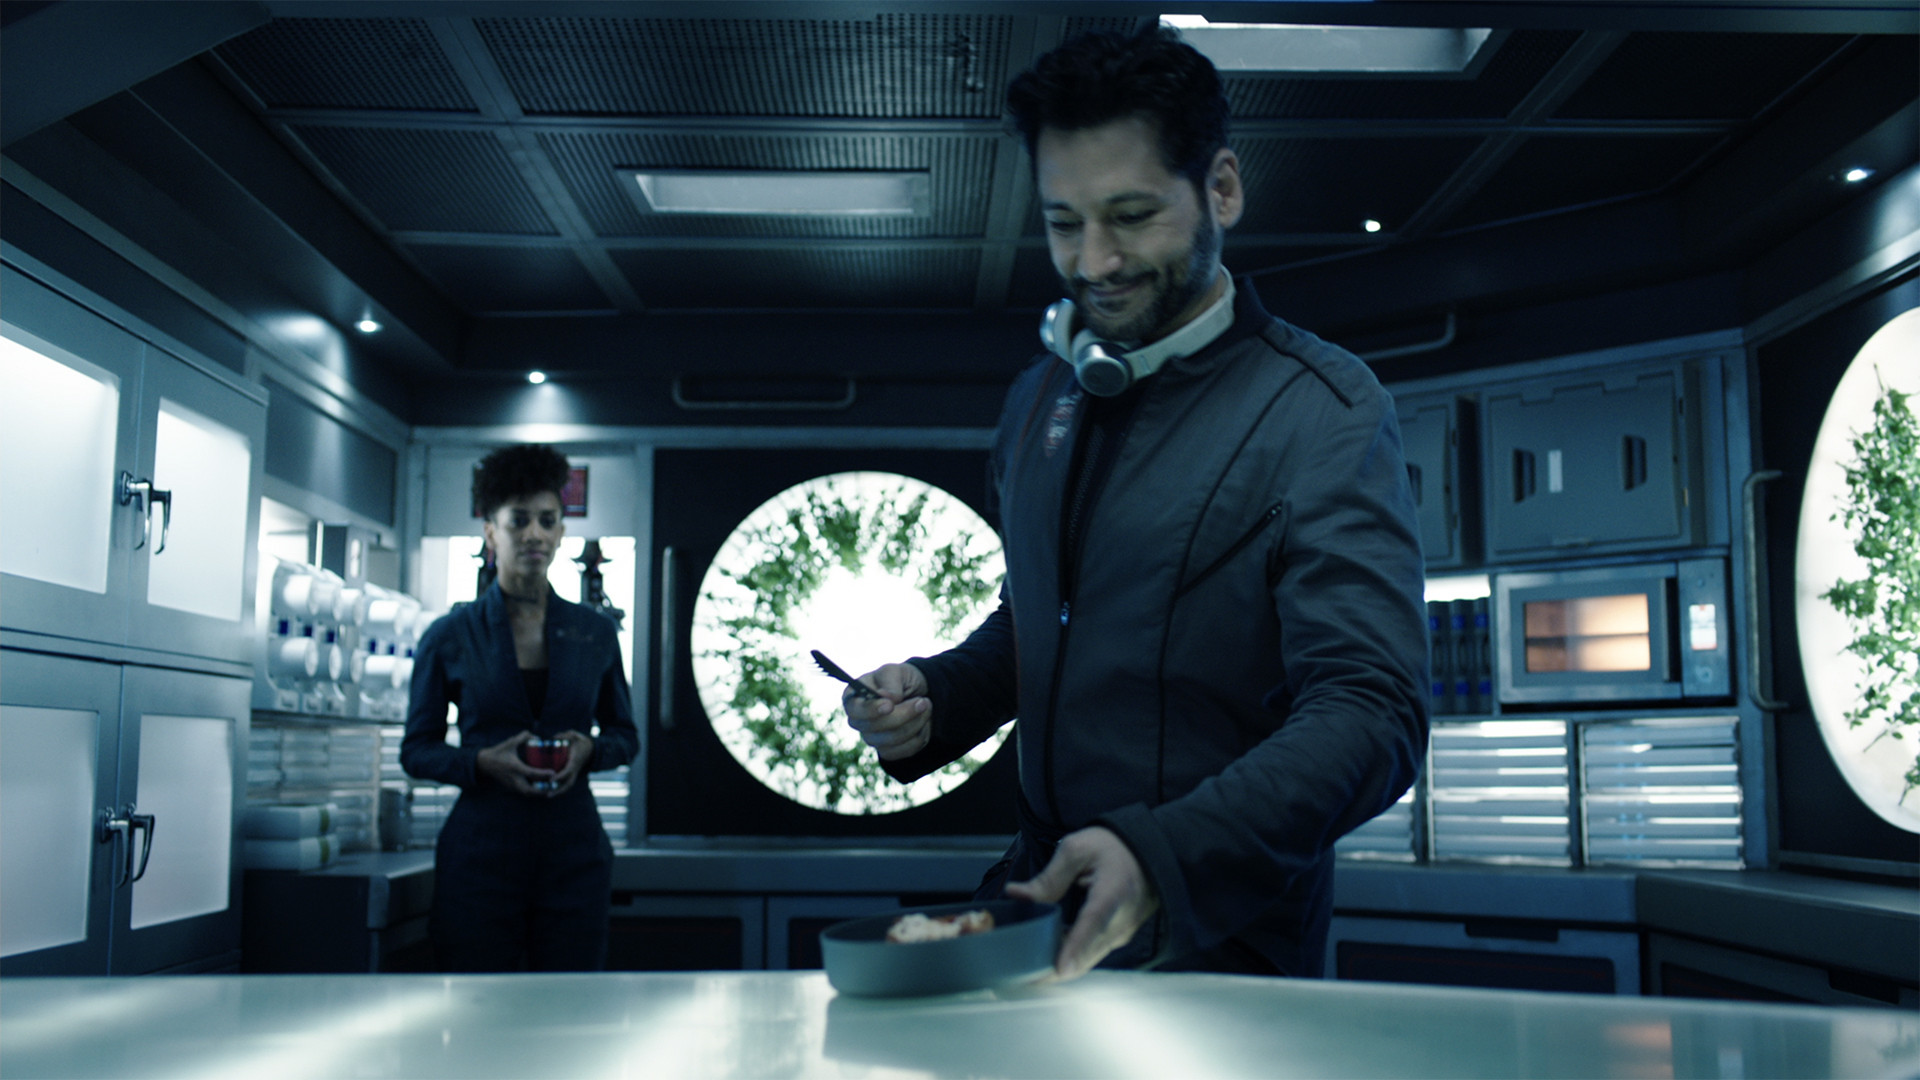 theexpanse_10thoughts_episode303_10.jpg